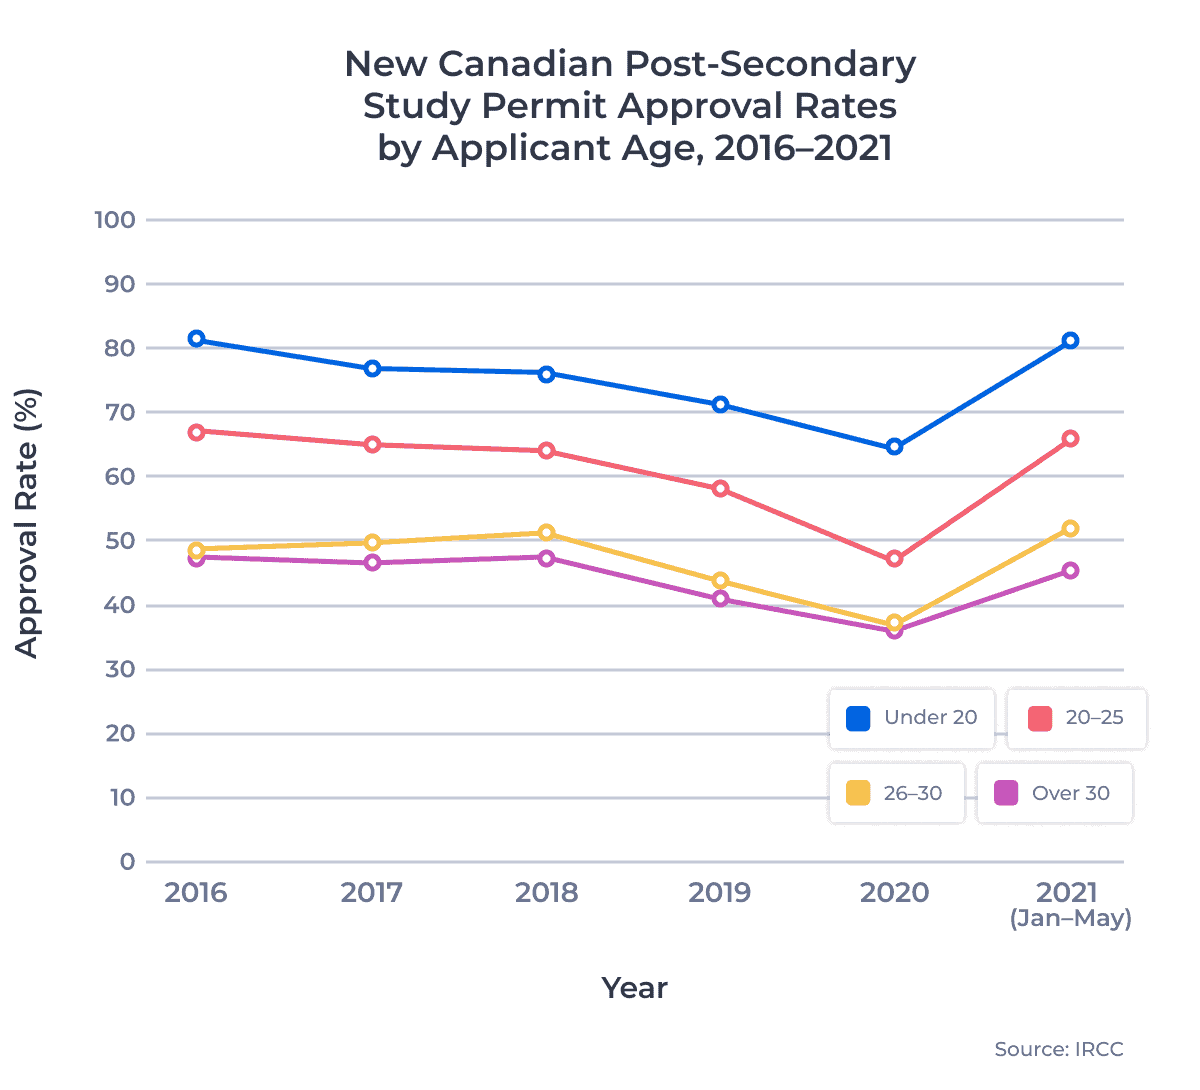 New Canadian Post-Secondary Study Permit Approval Rates by Applicant Age 2017–2021